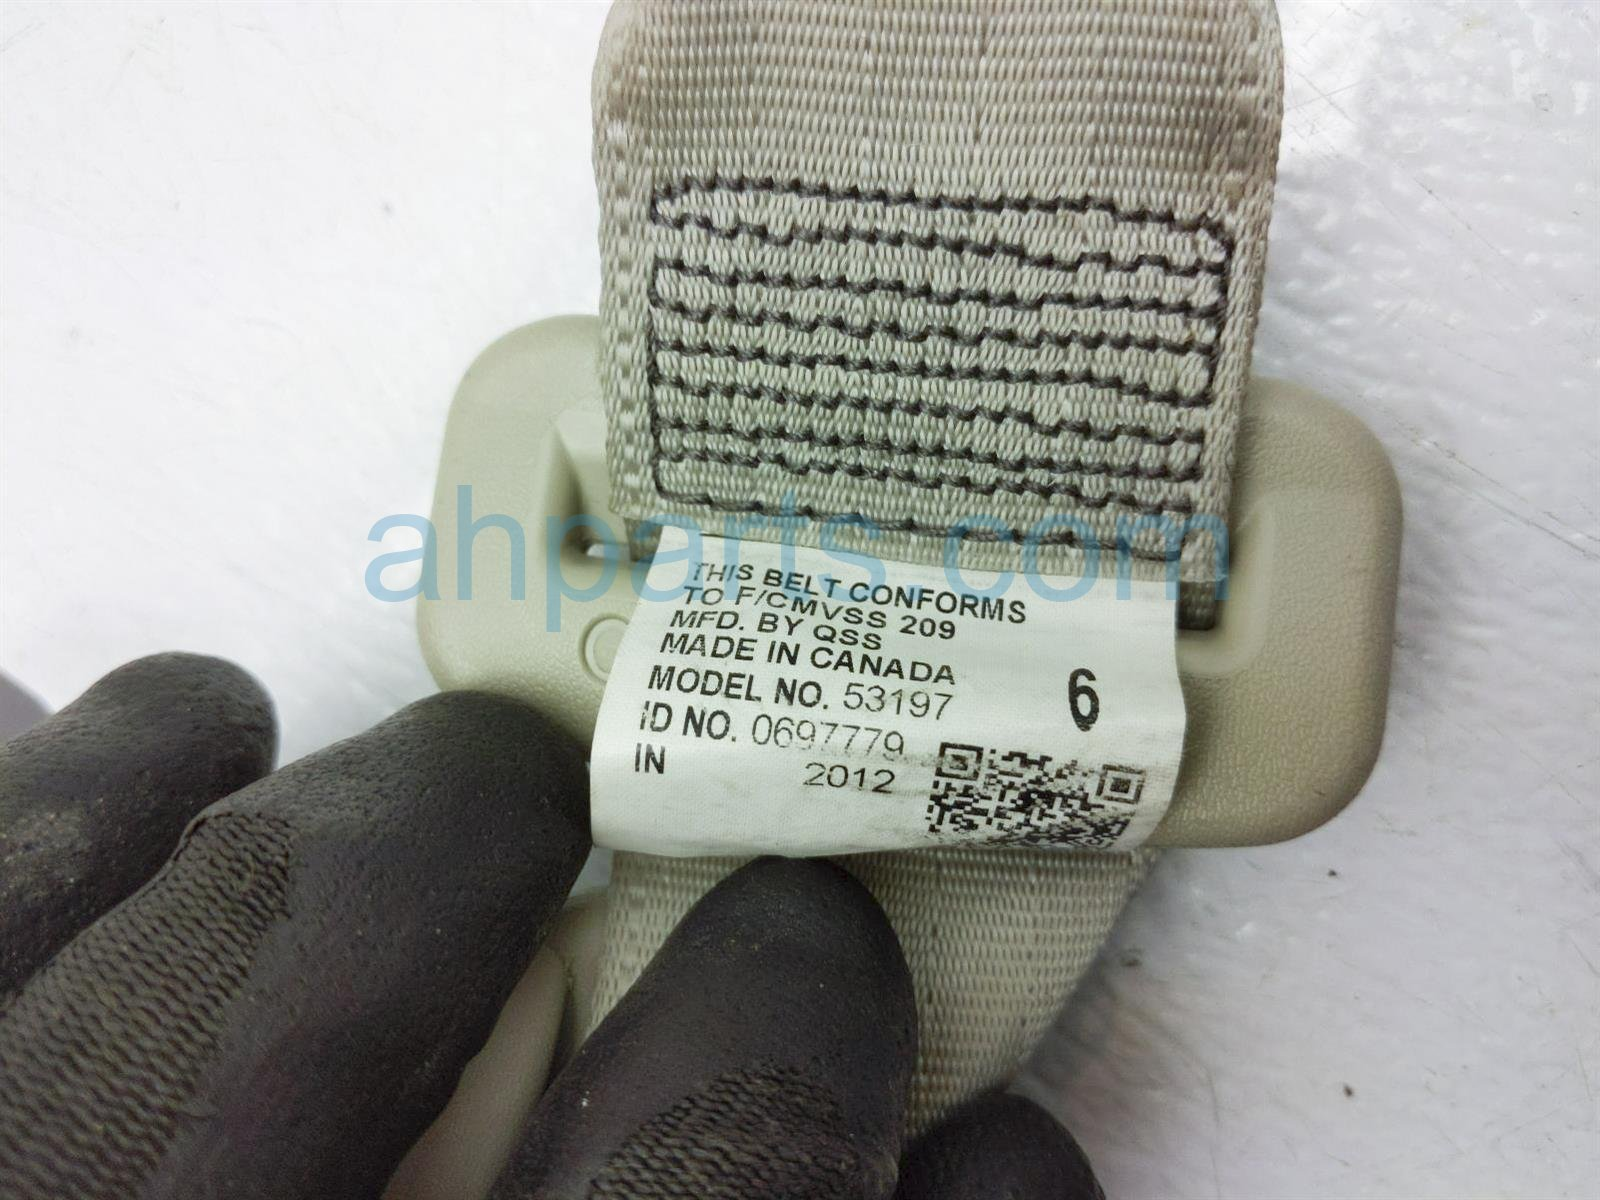 2013 Toyota Sienna Rear 3rd Row Driver Seat Belt   Tan 73570 08030 B2 Replacement